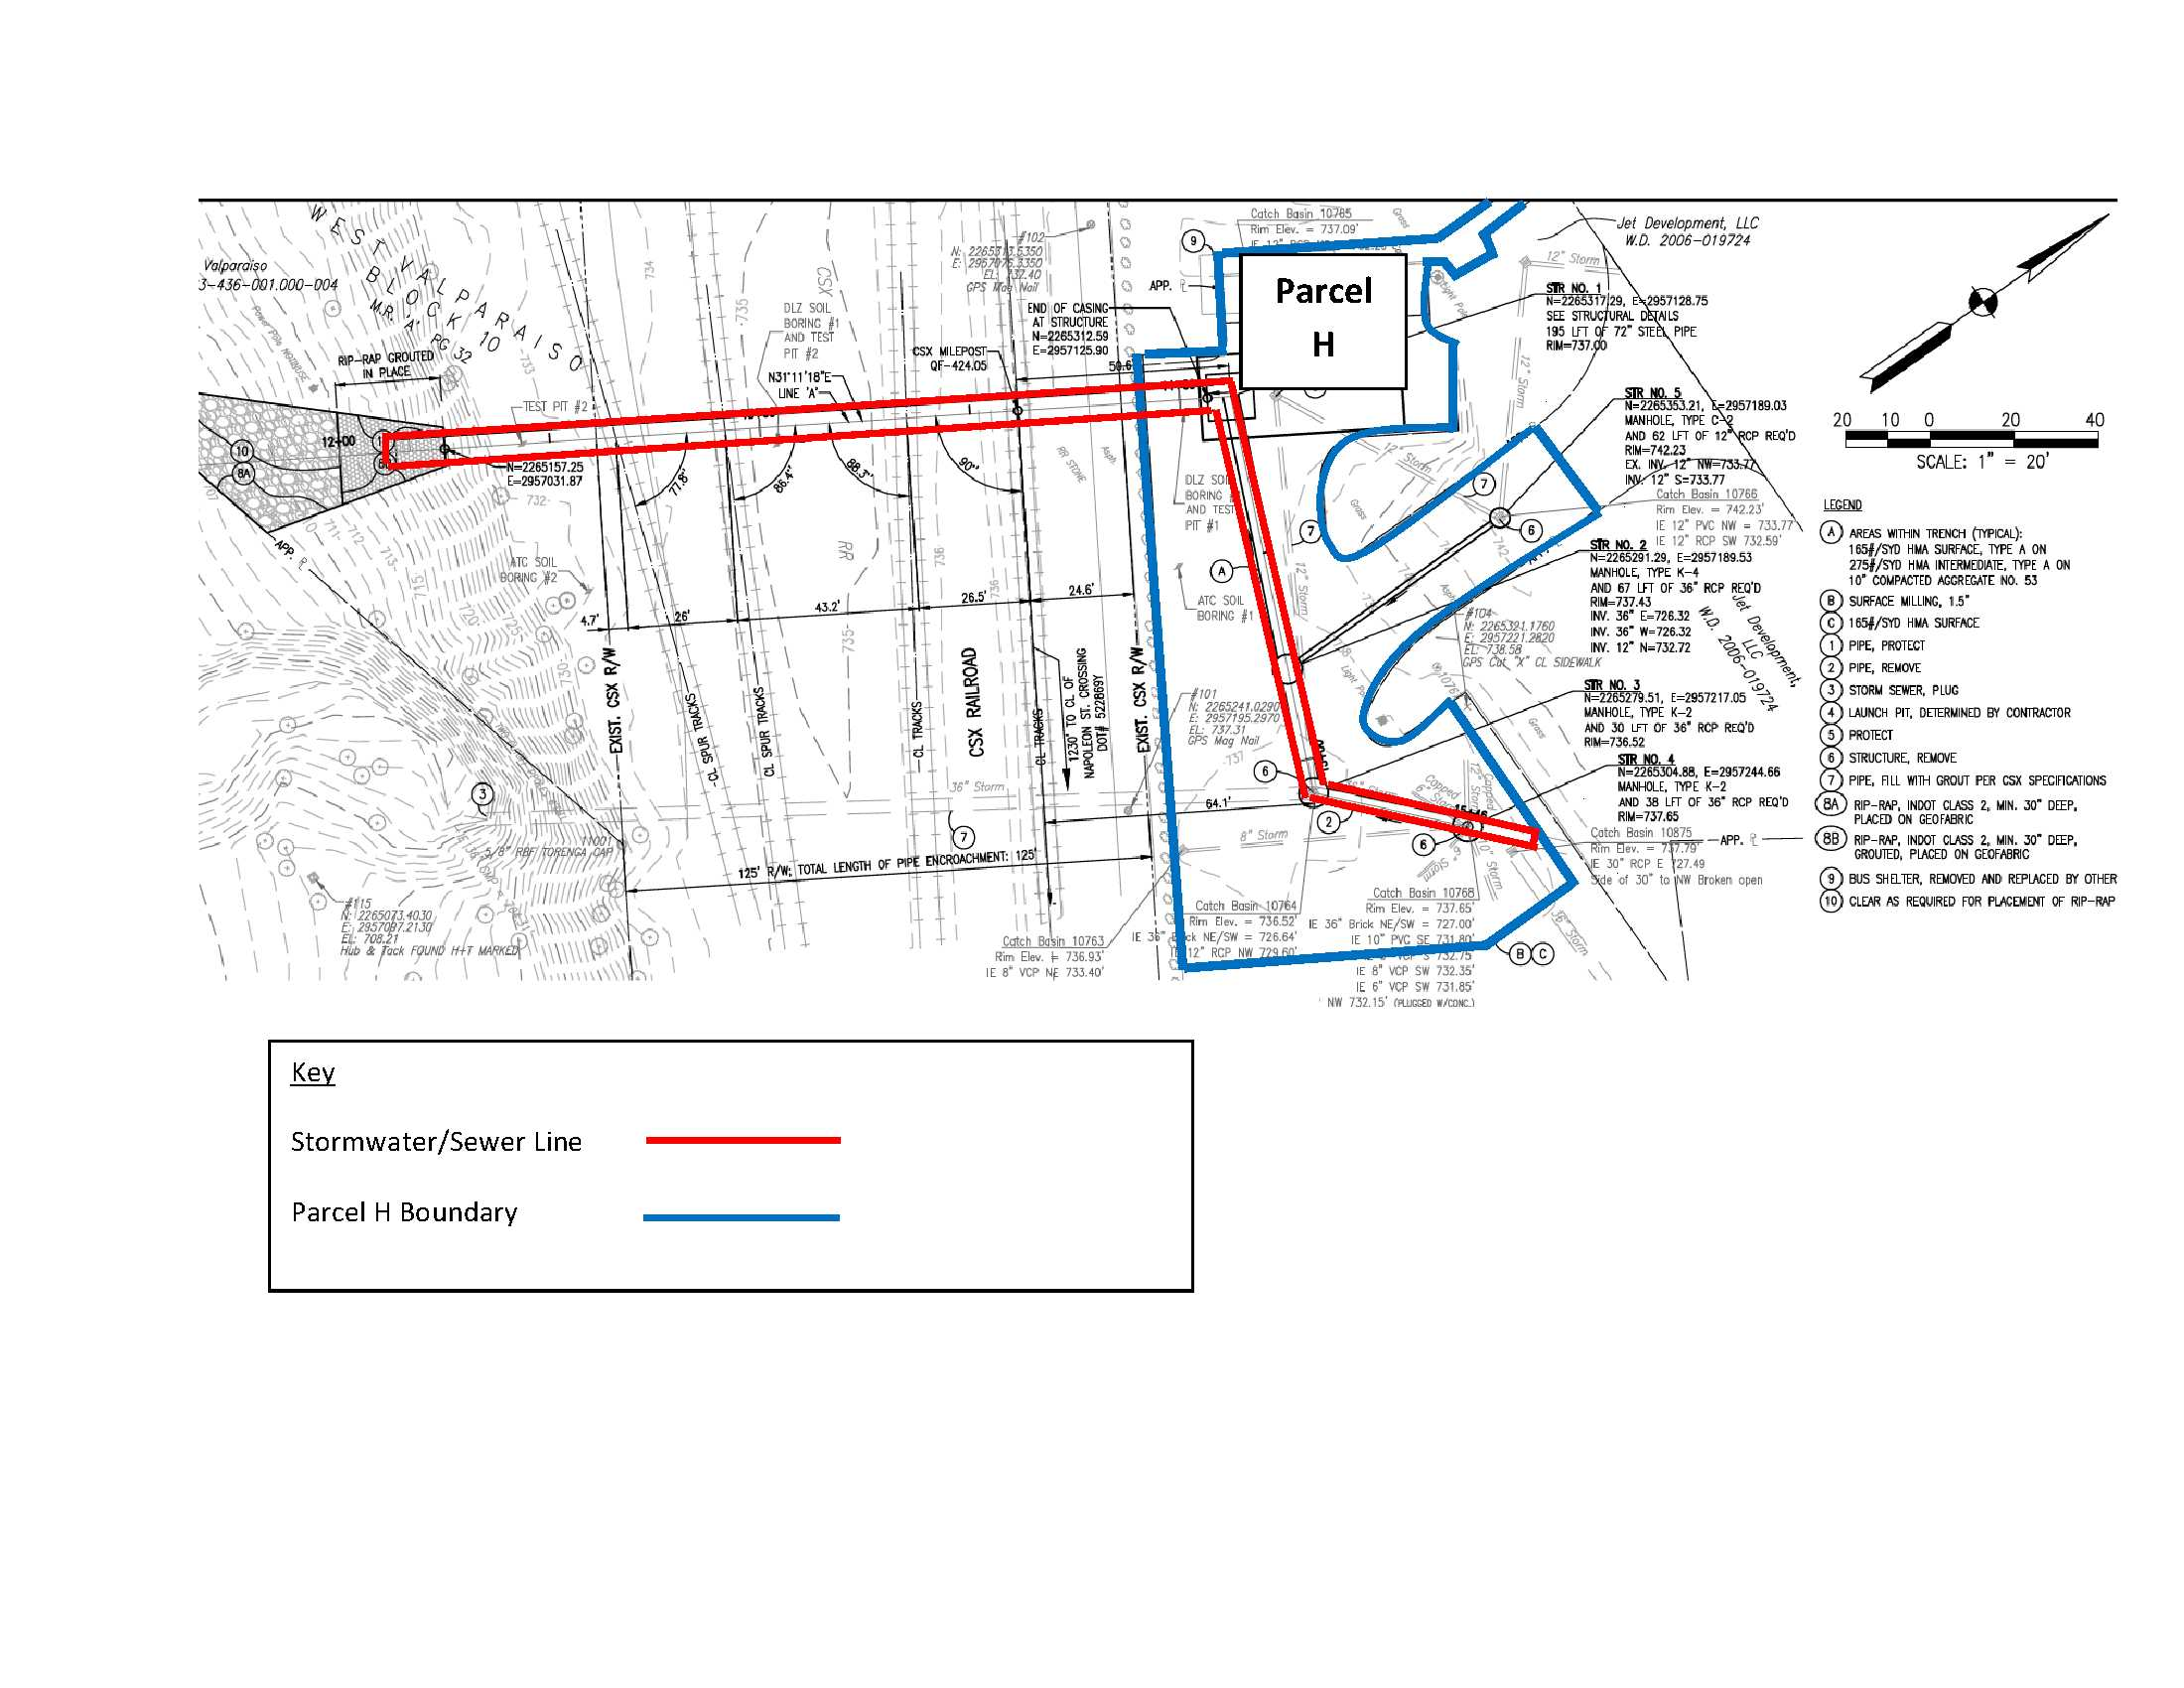 Parcel H, stormwater-sewer outline